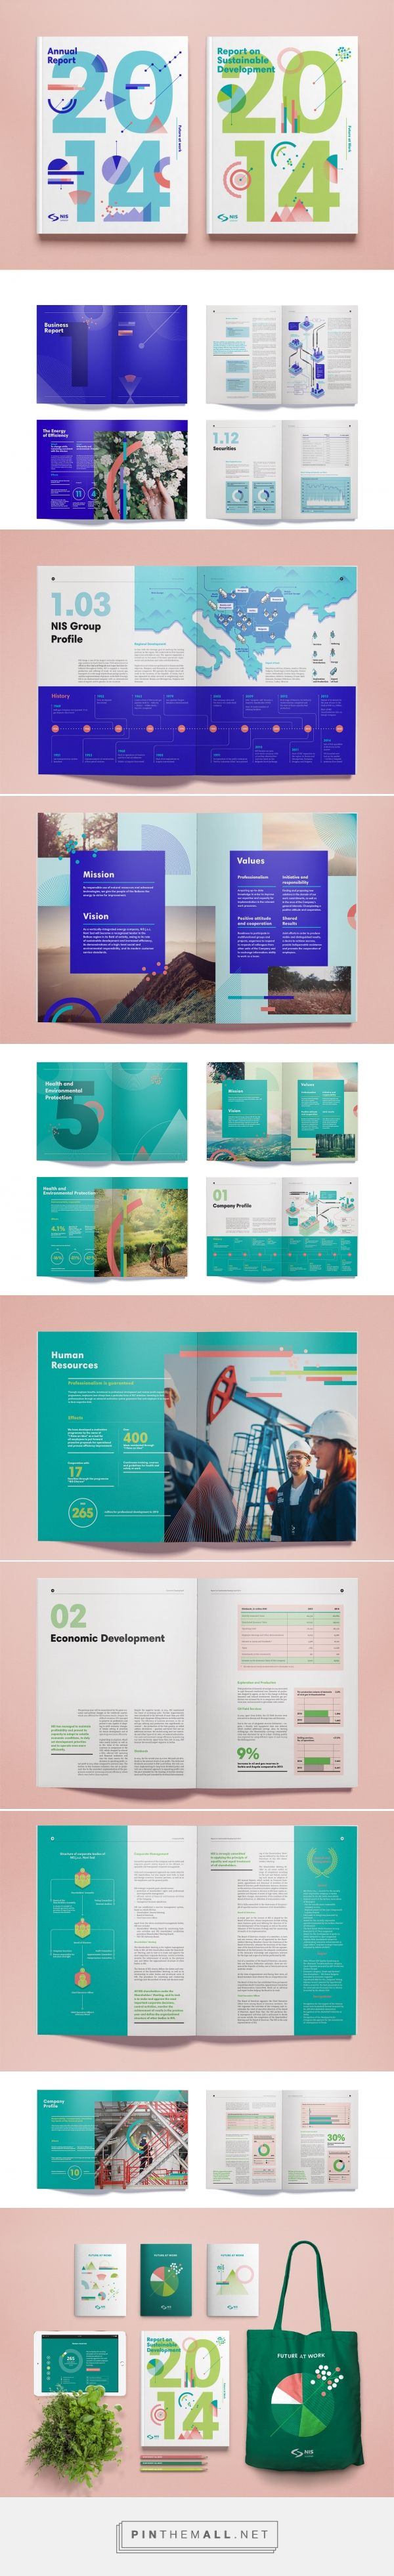 NIS Annual Report 2014 on Behance … More